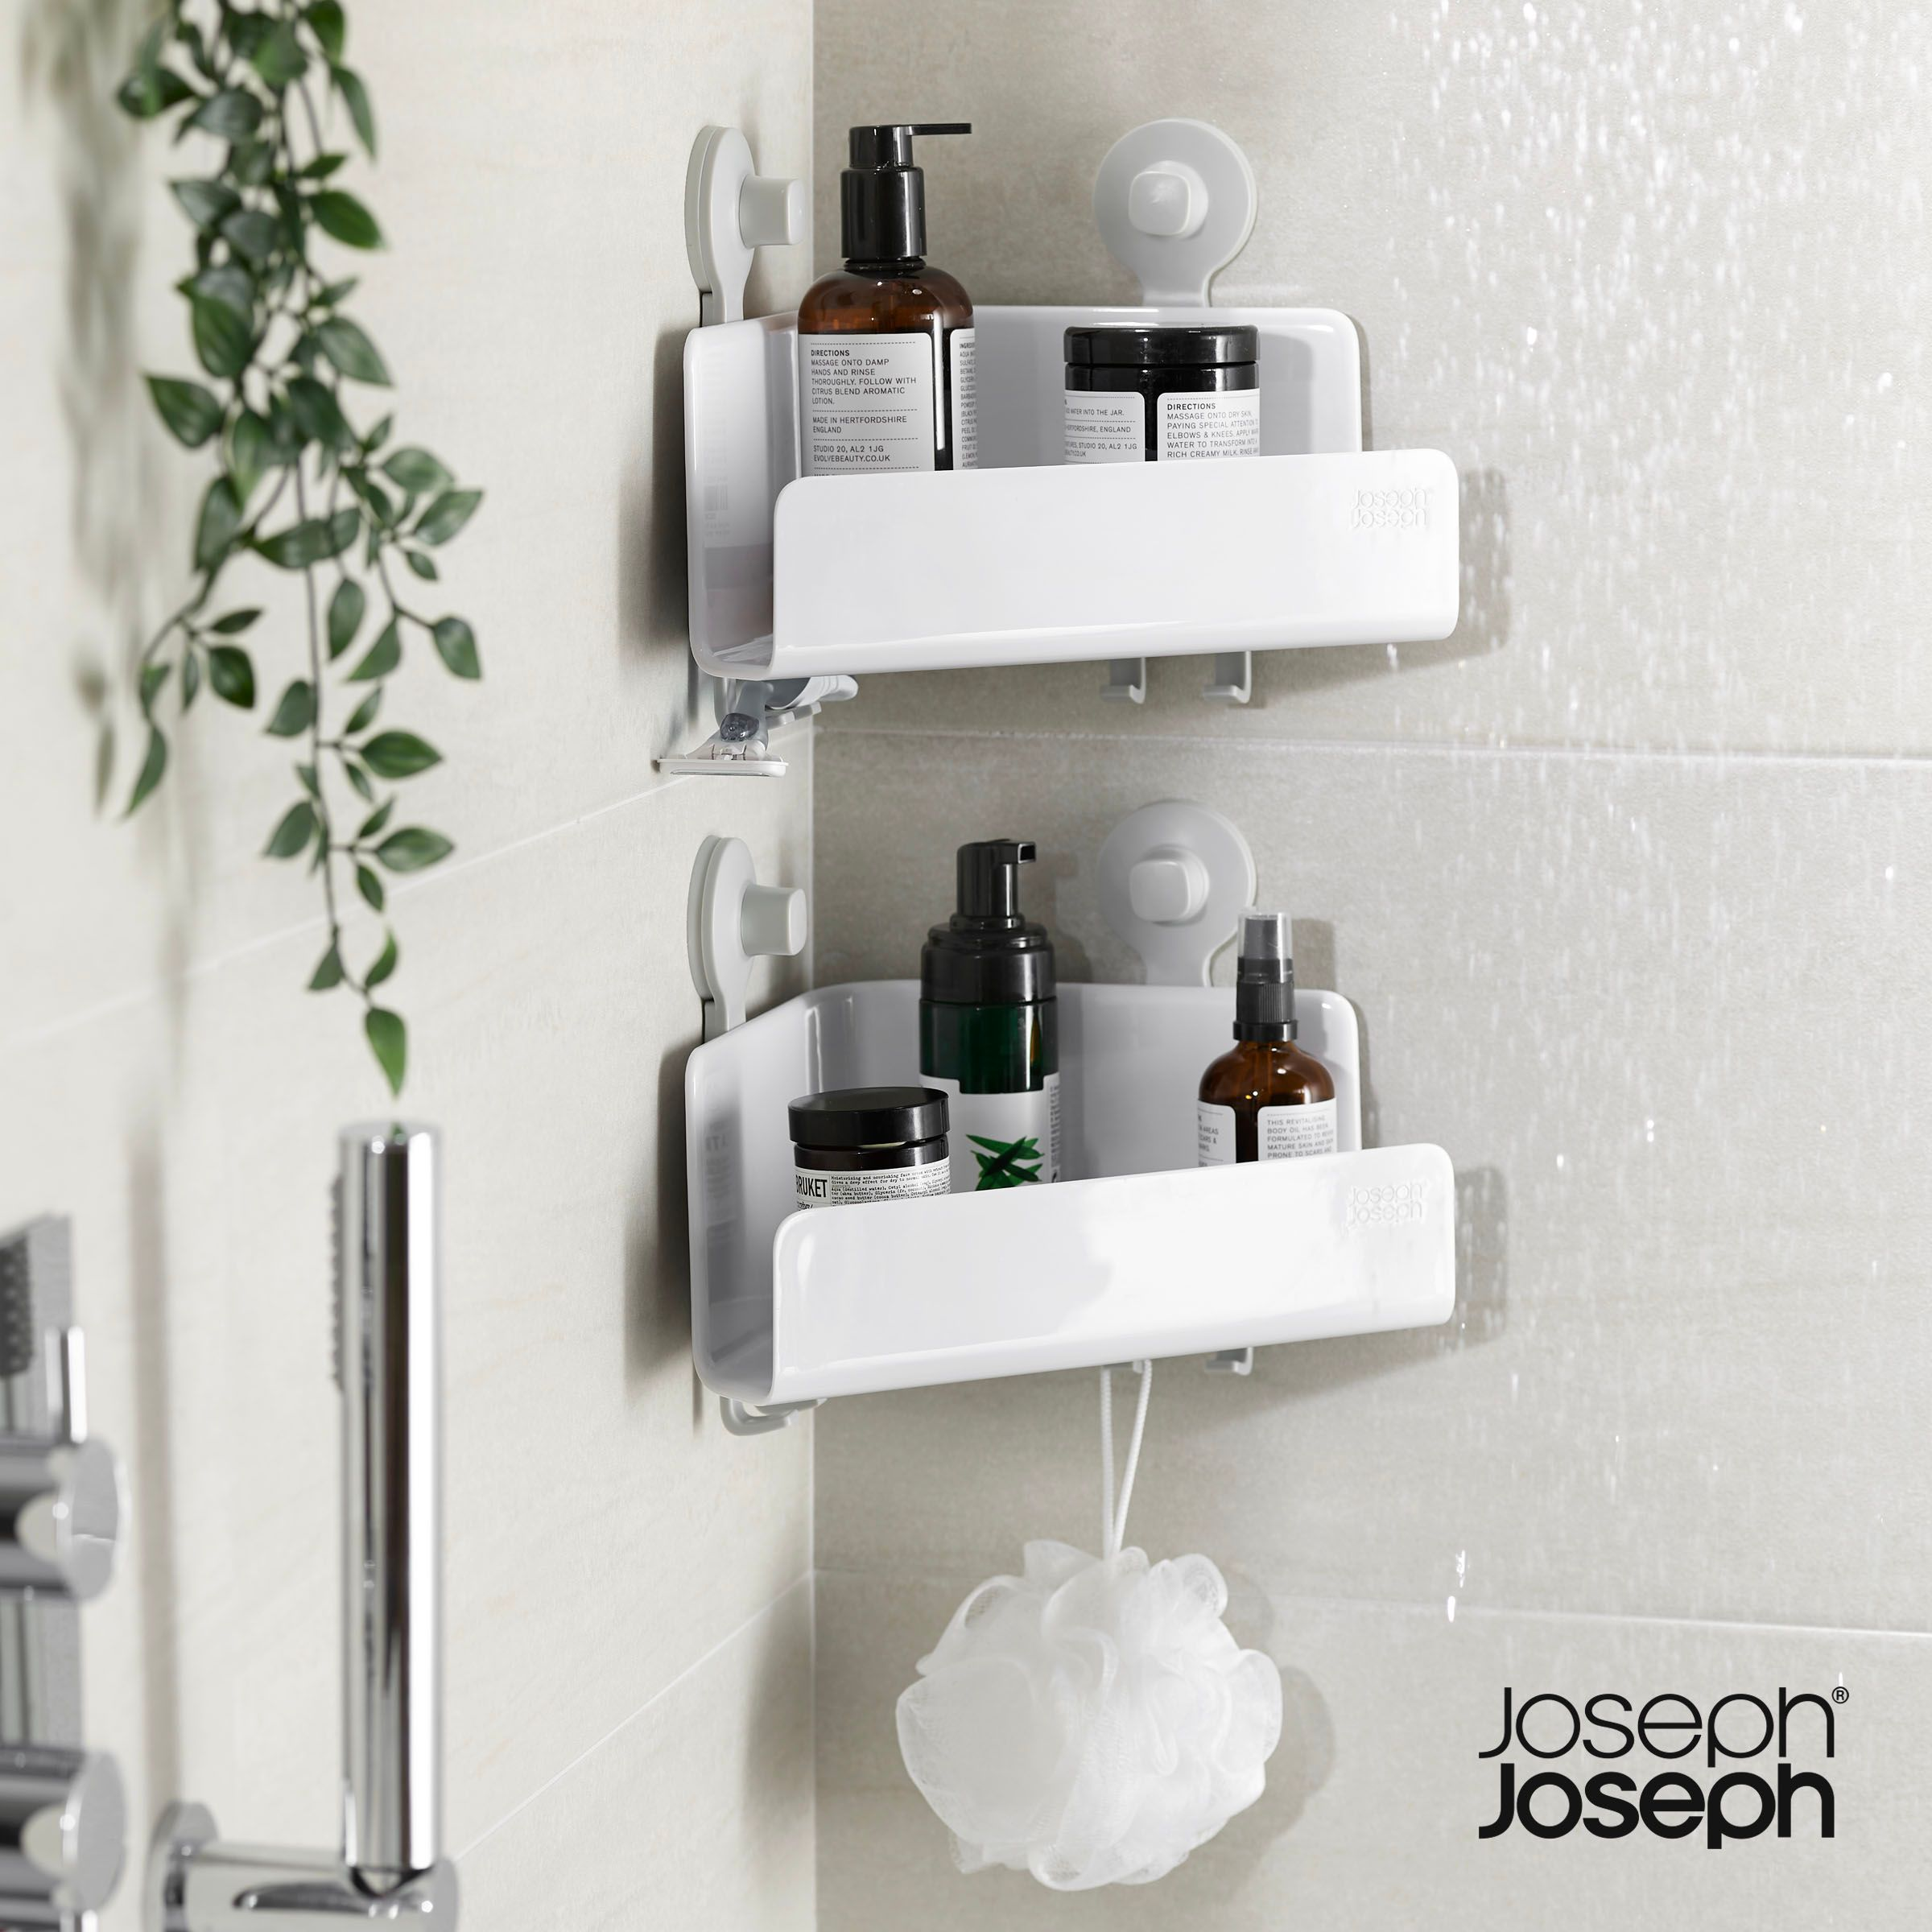 Shower Storage made simple